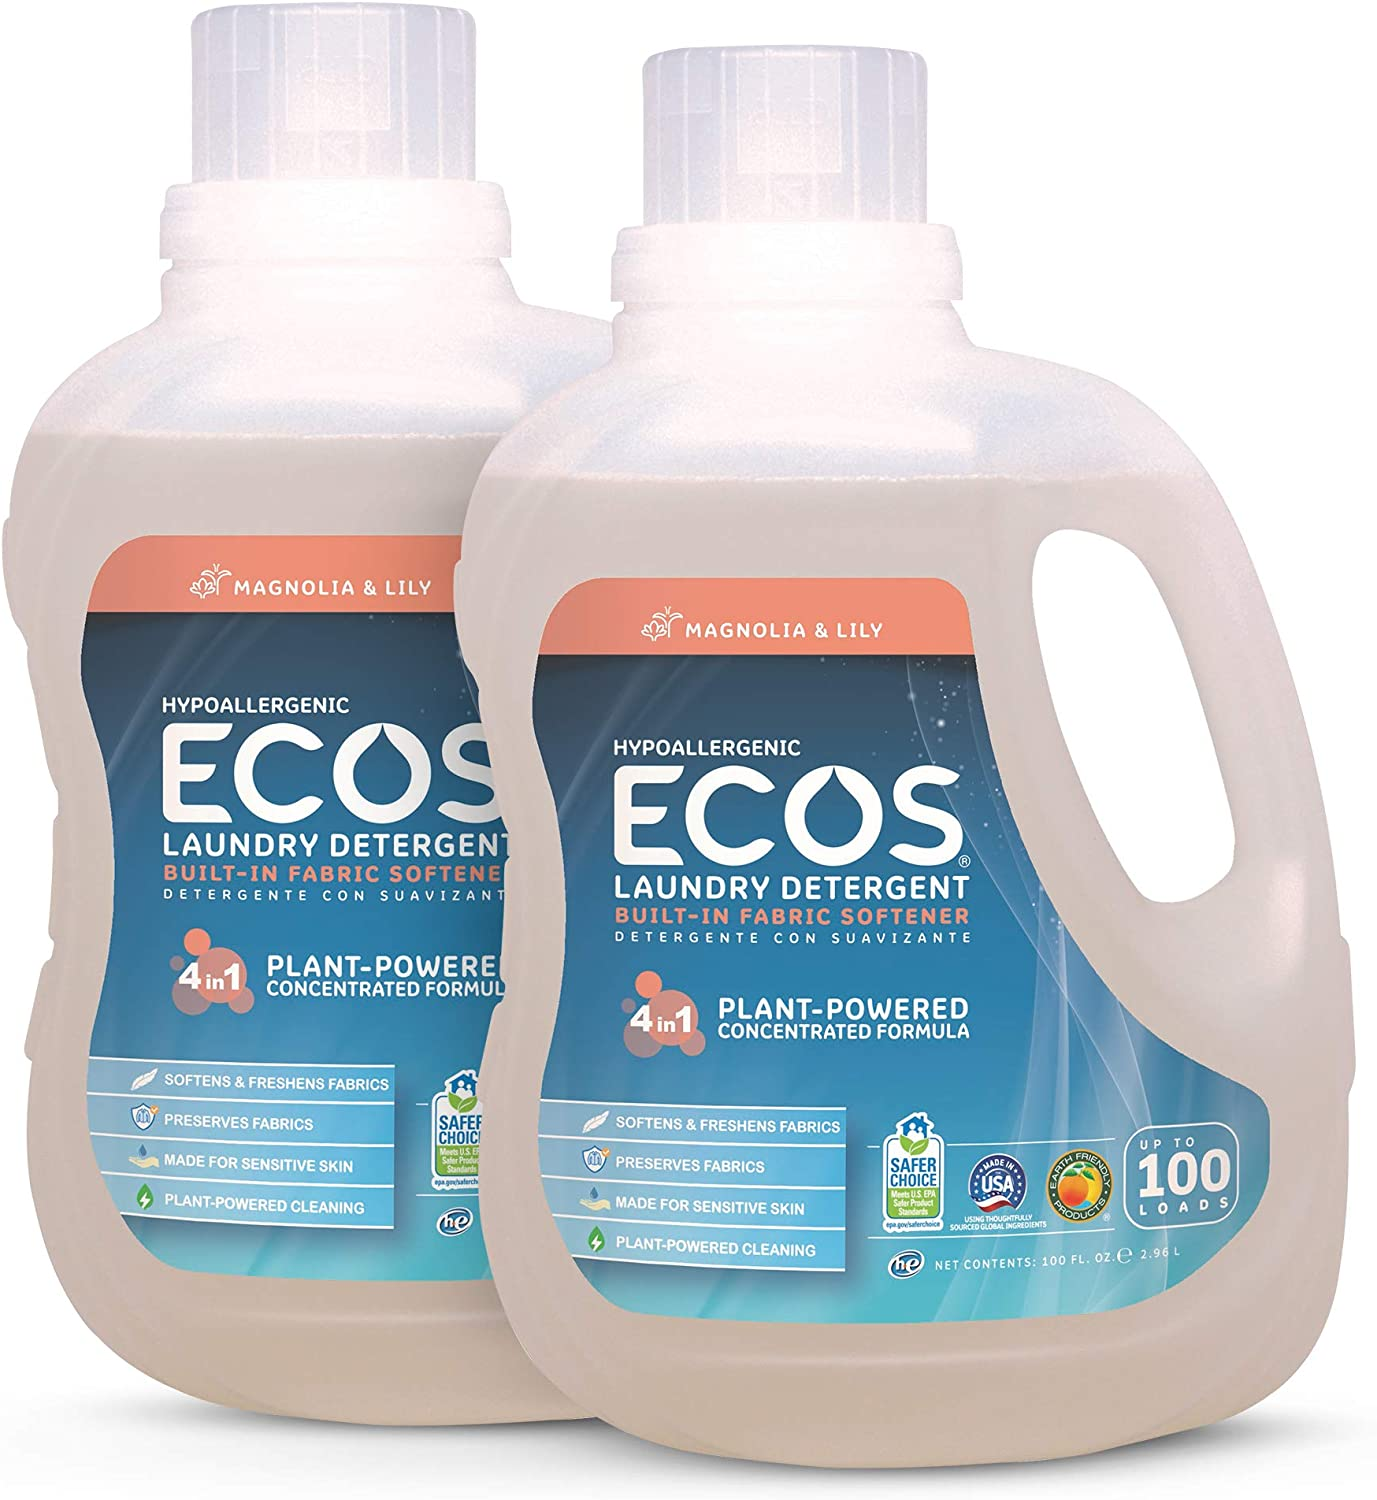 Earth Friendly Products ECOS 2X Hypoallergenic Liquid Laundry Detergent, Magnolia & Lily, 200 Loads (Pack of 2, 100 Ounce ea)